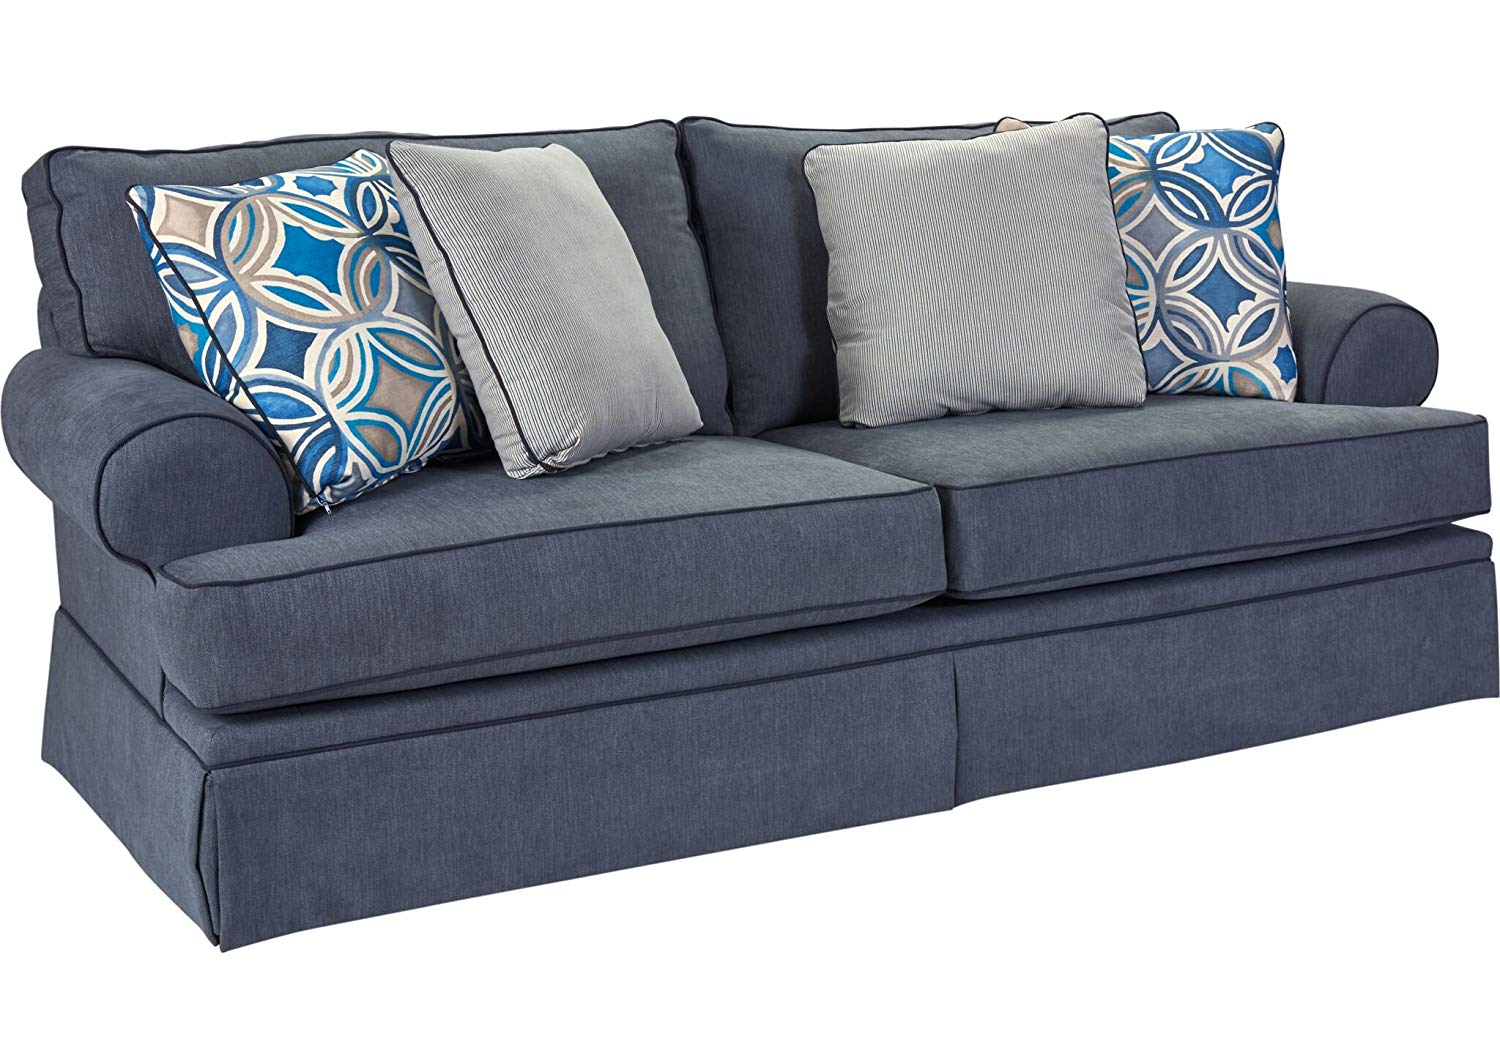 Emily Sofa Find Deals